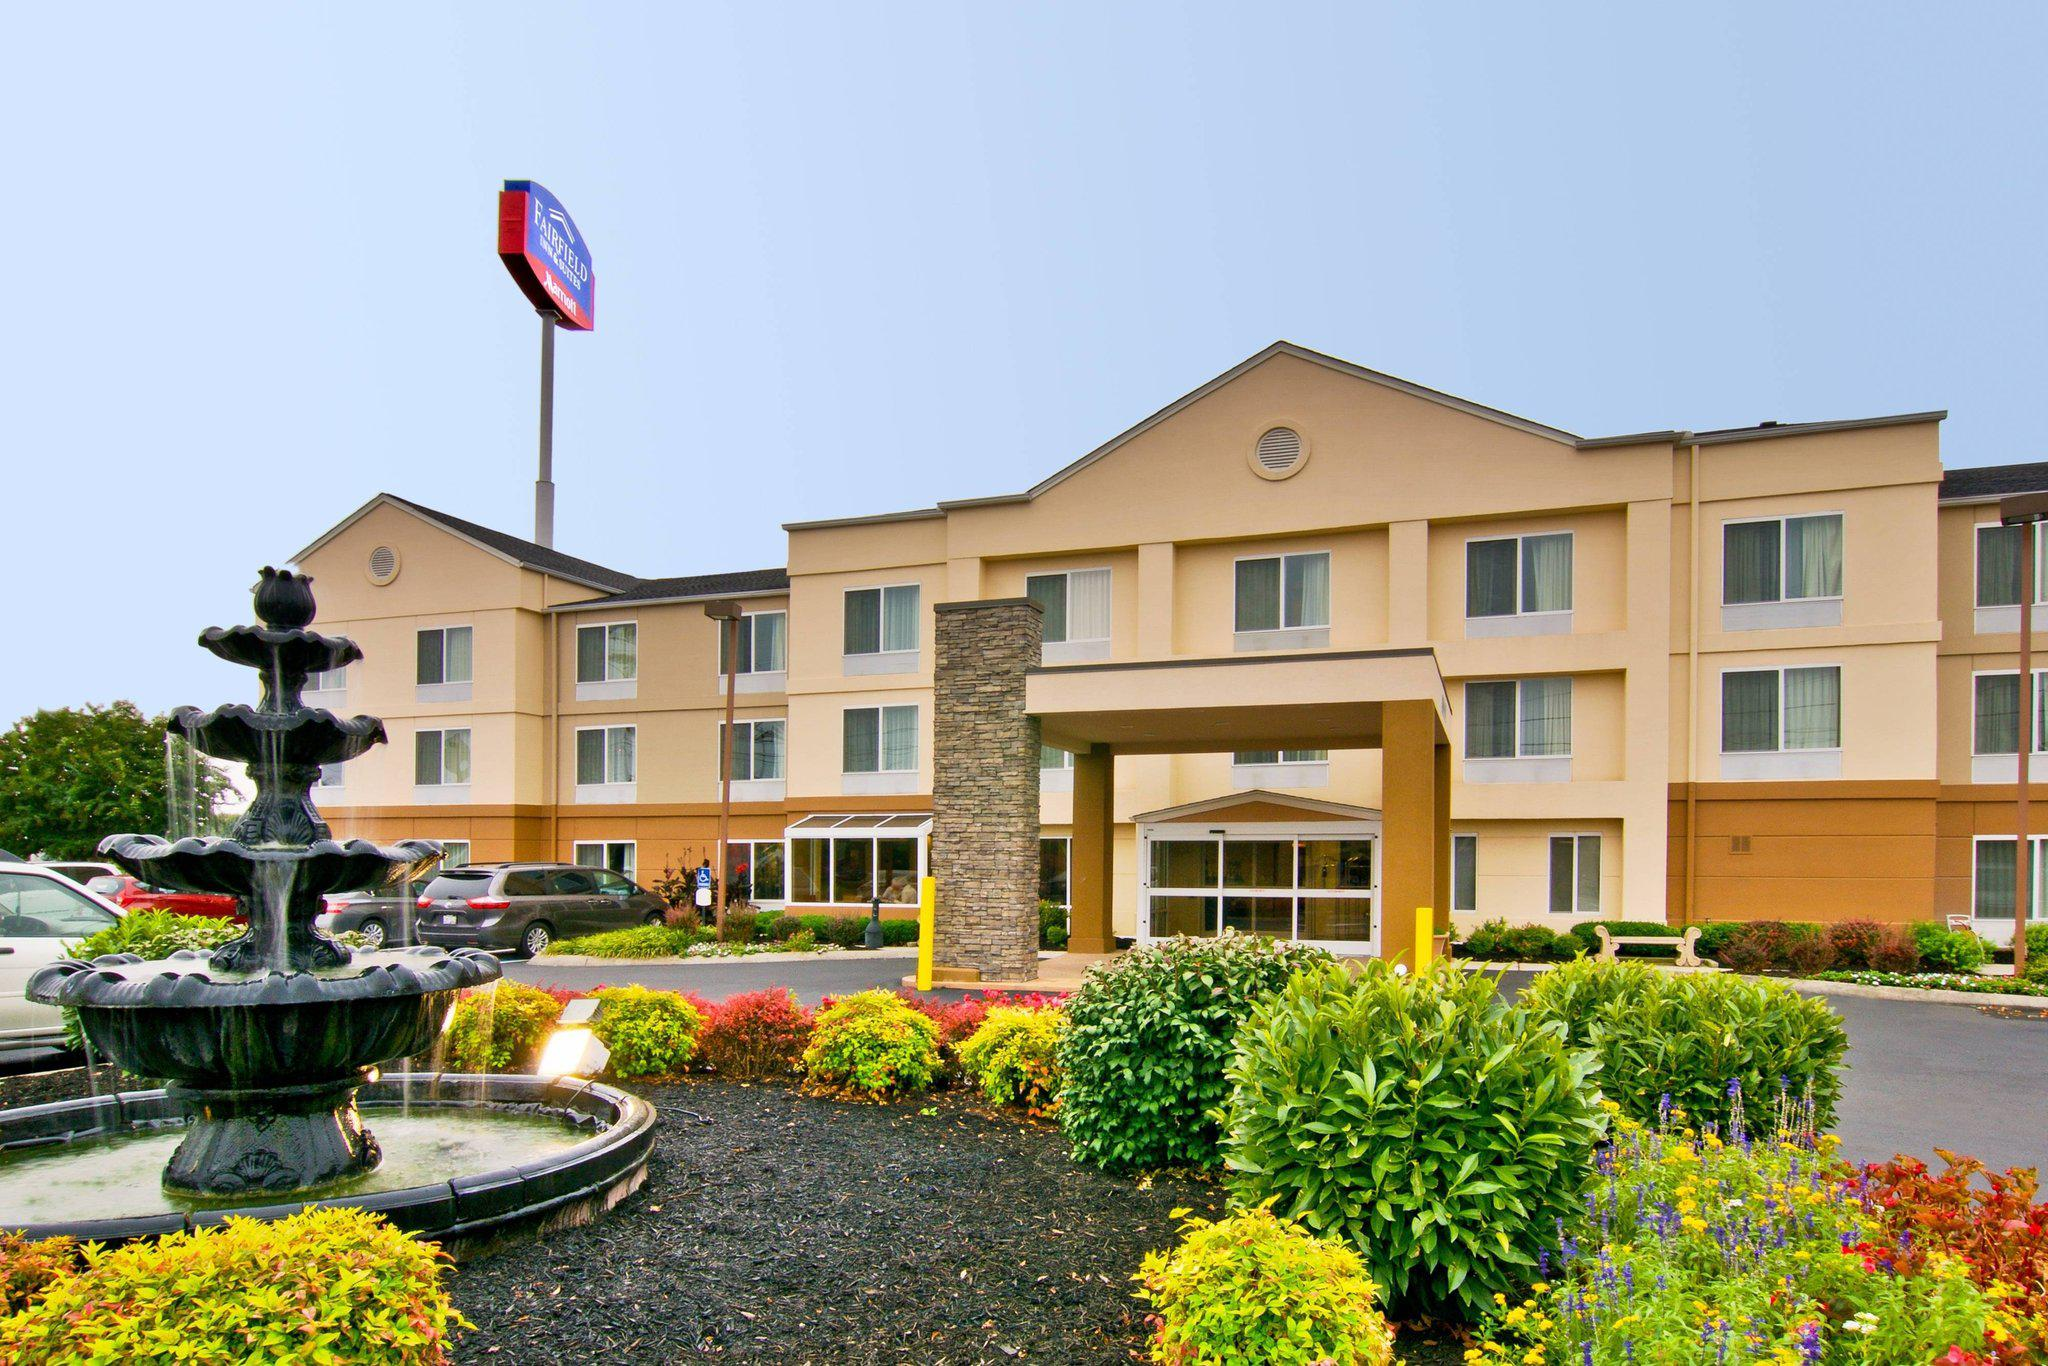 Fairfield Inn & Suites by Marriott Clarksville